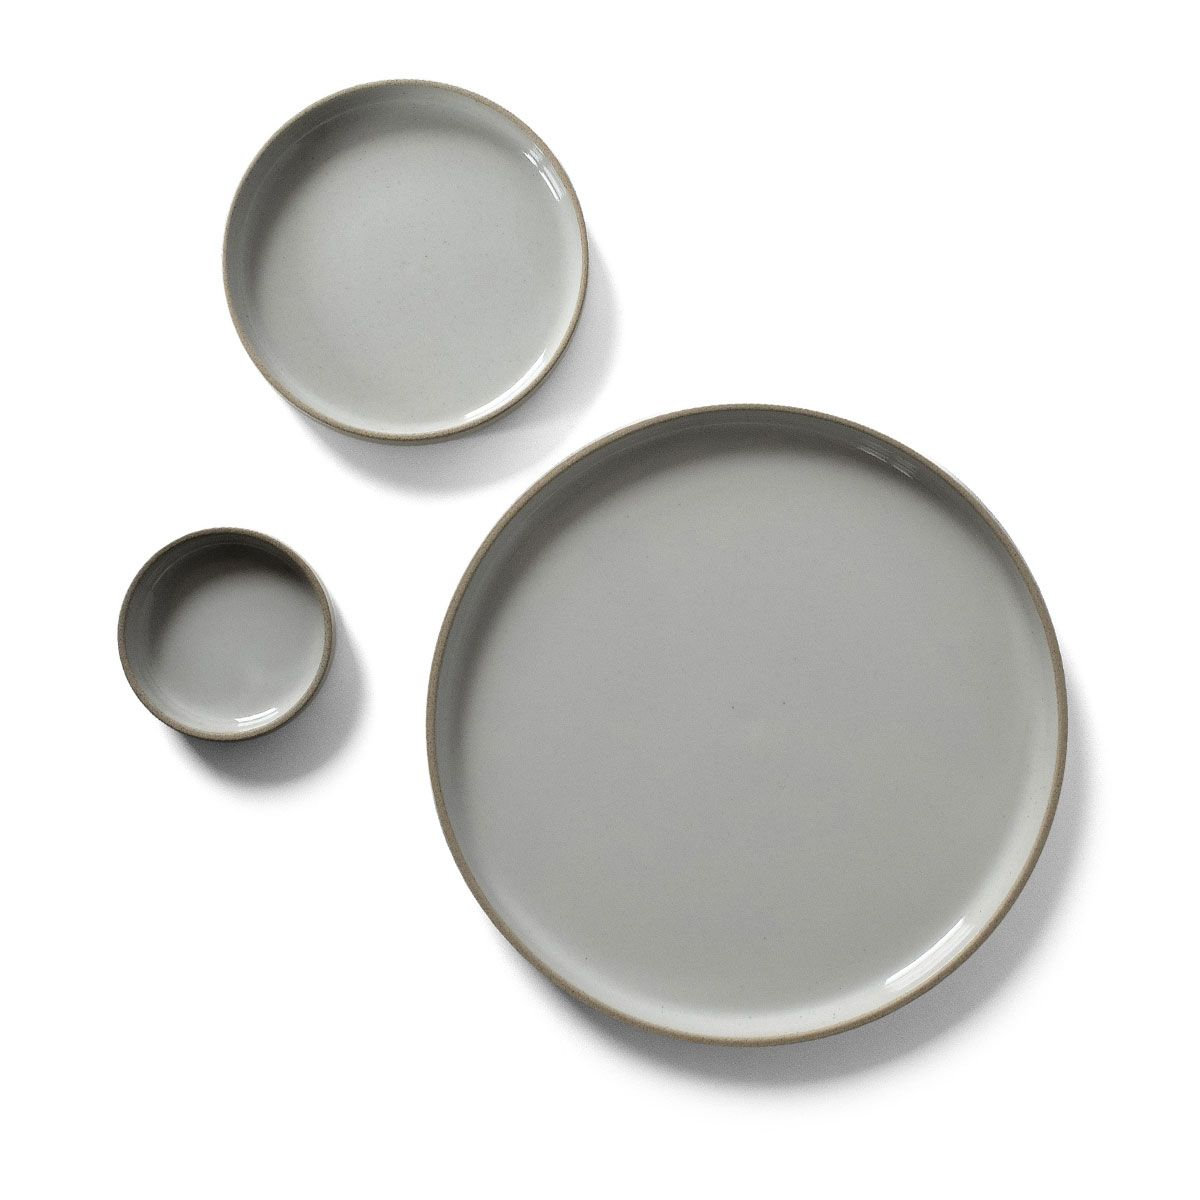 Hasami Japanese Porcelain Dinnerware Collection  sc 1 st  Pinterest & Hasami Japanese Porcelain Dinnerware Collection | Ceramic techniques ...